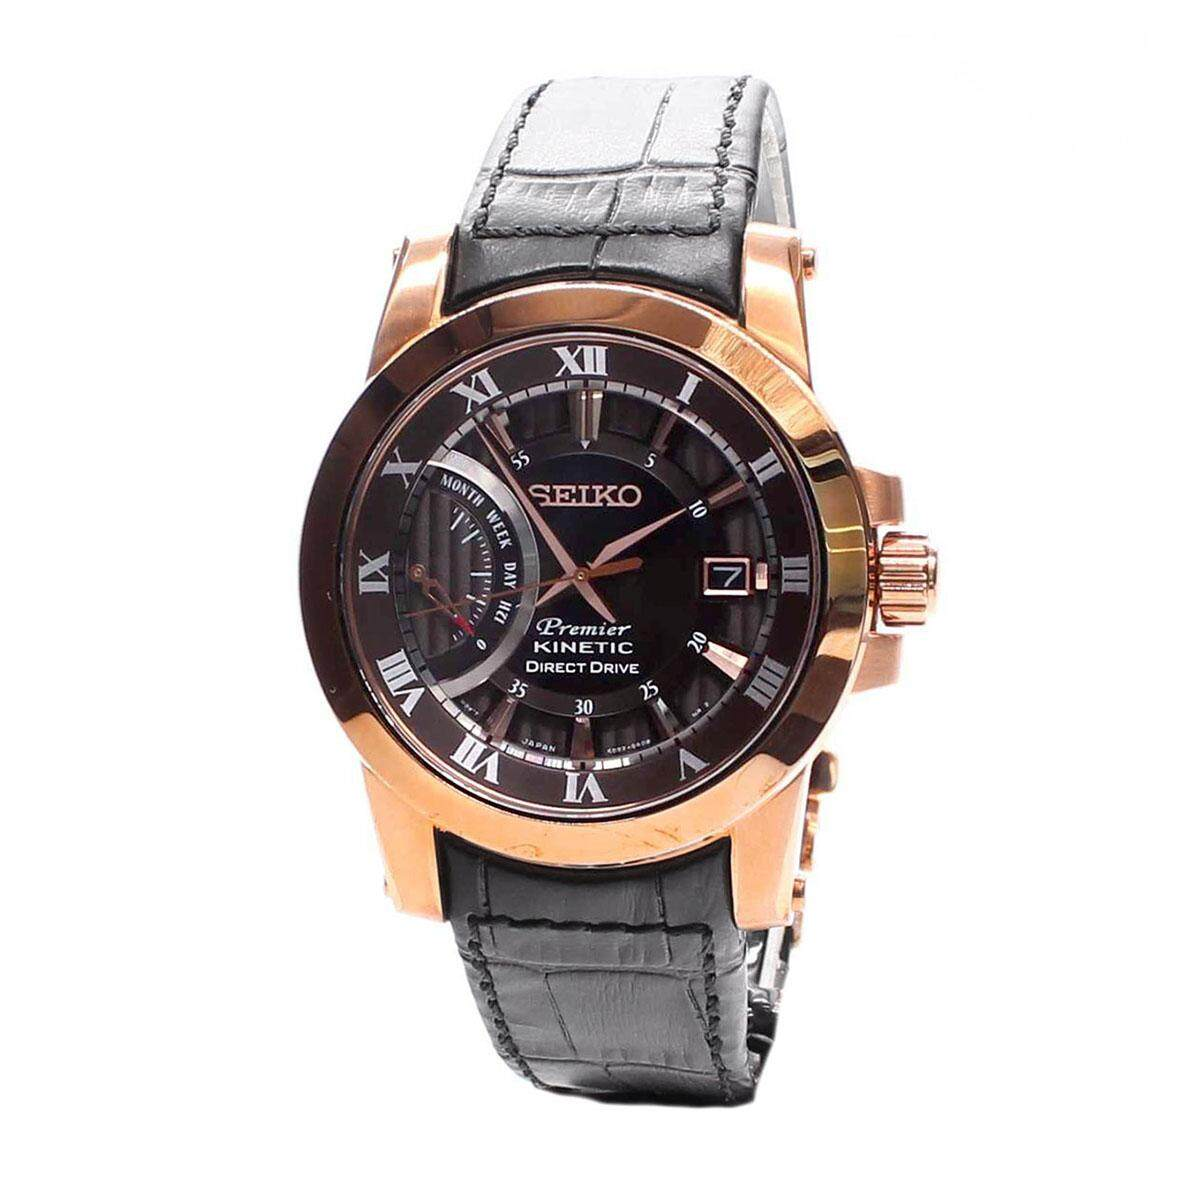 Sell Seiko Kinetic Ska683p1 Cheapest Best Quality Th Store Silver Dial Stainless Steel Bracelet Thb 10790 Premier Direct Drive Black Case Leather Strap Mens Srg016p1thb10790